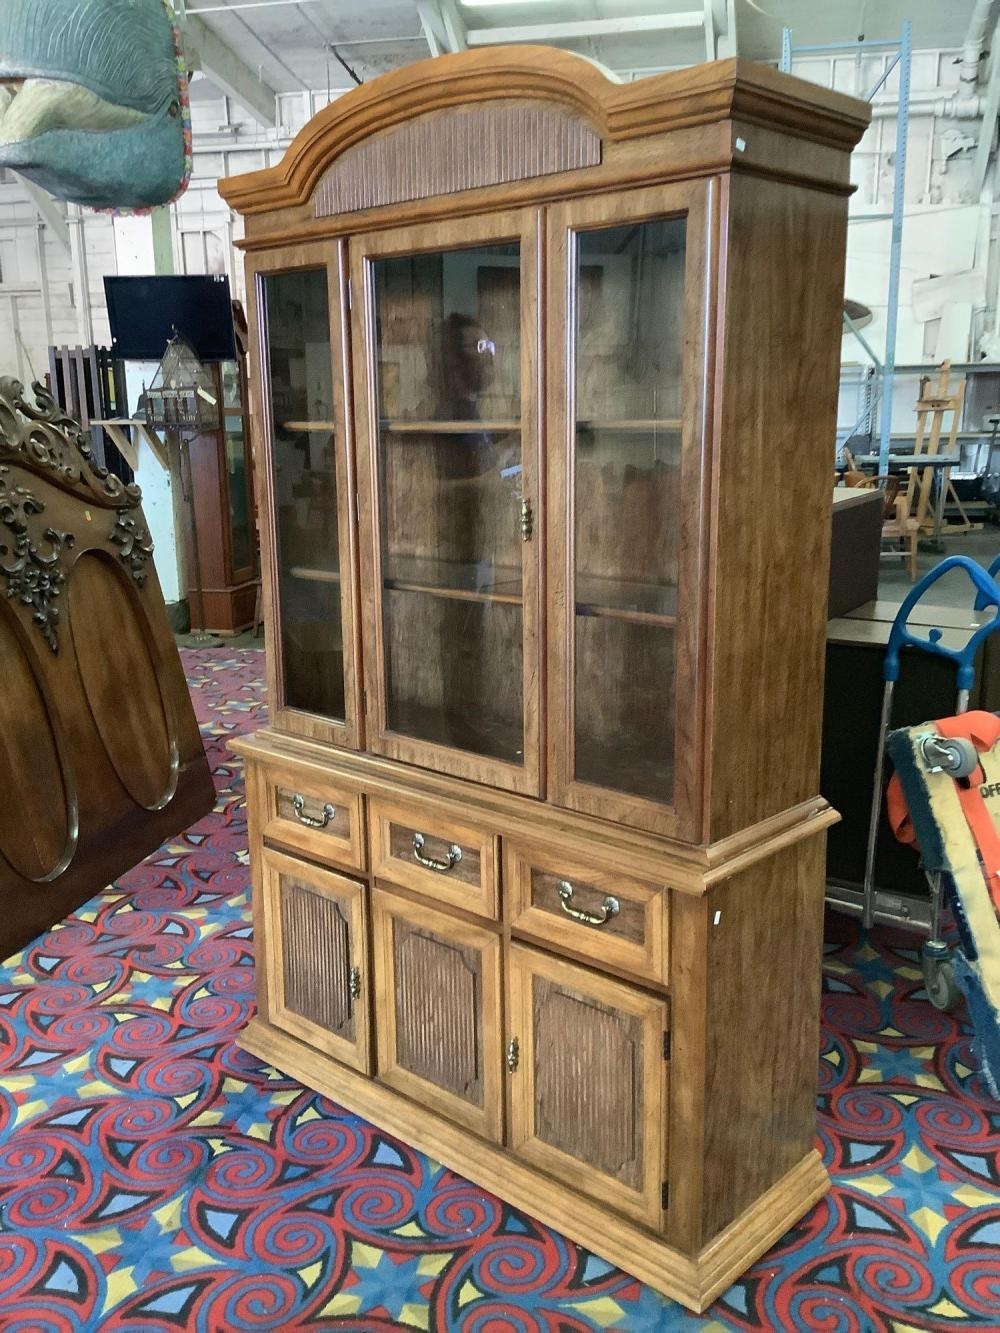 Lot 50: Modern Pecan china cabinet with glass windows/shelves, lighted top - marked Laconia